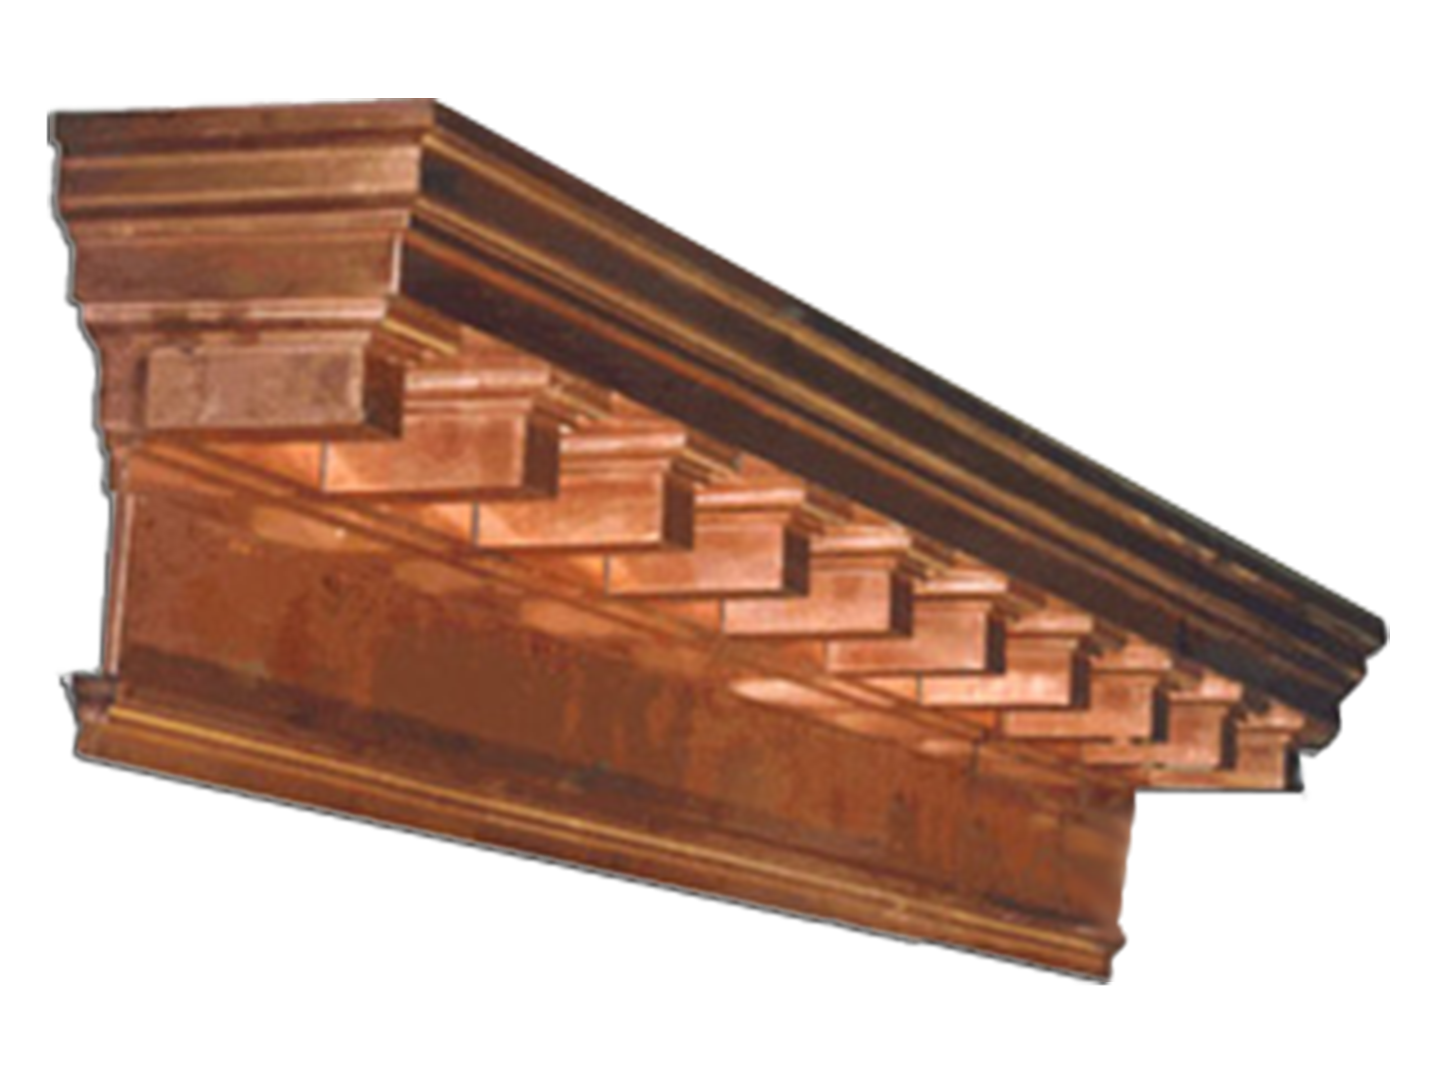 Copper cornice with dentil details